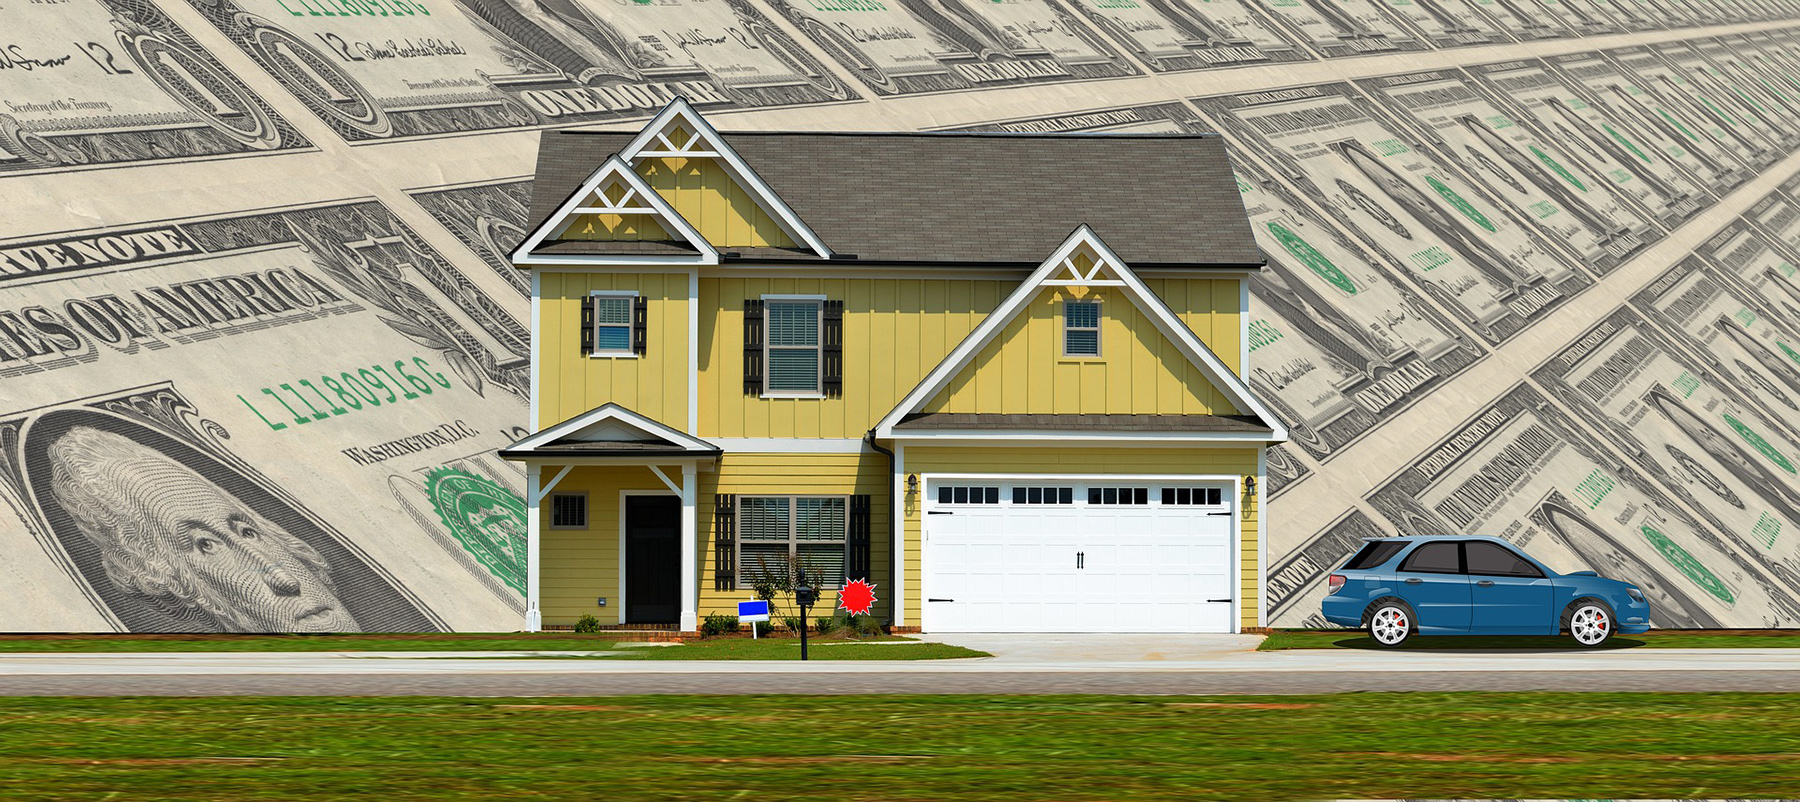 Image of house with dollars bills in background